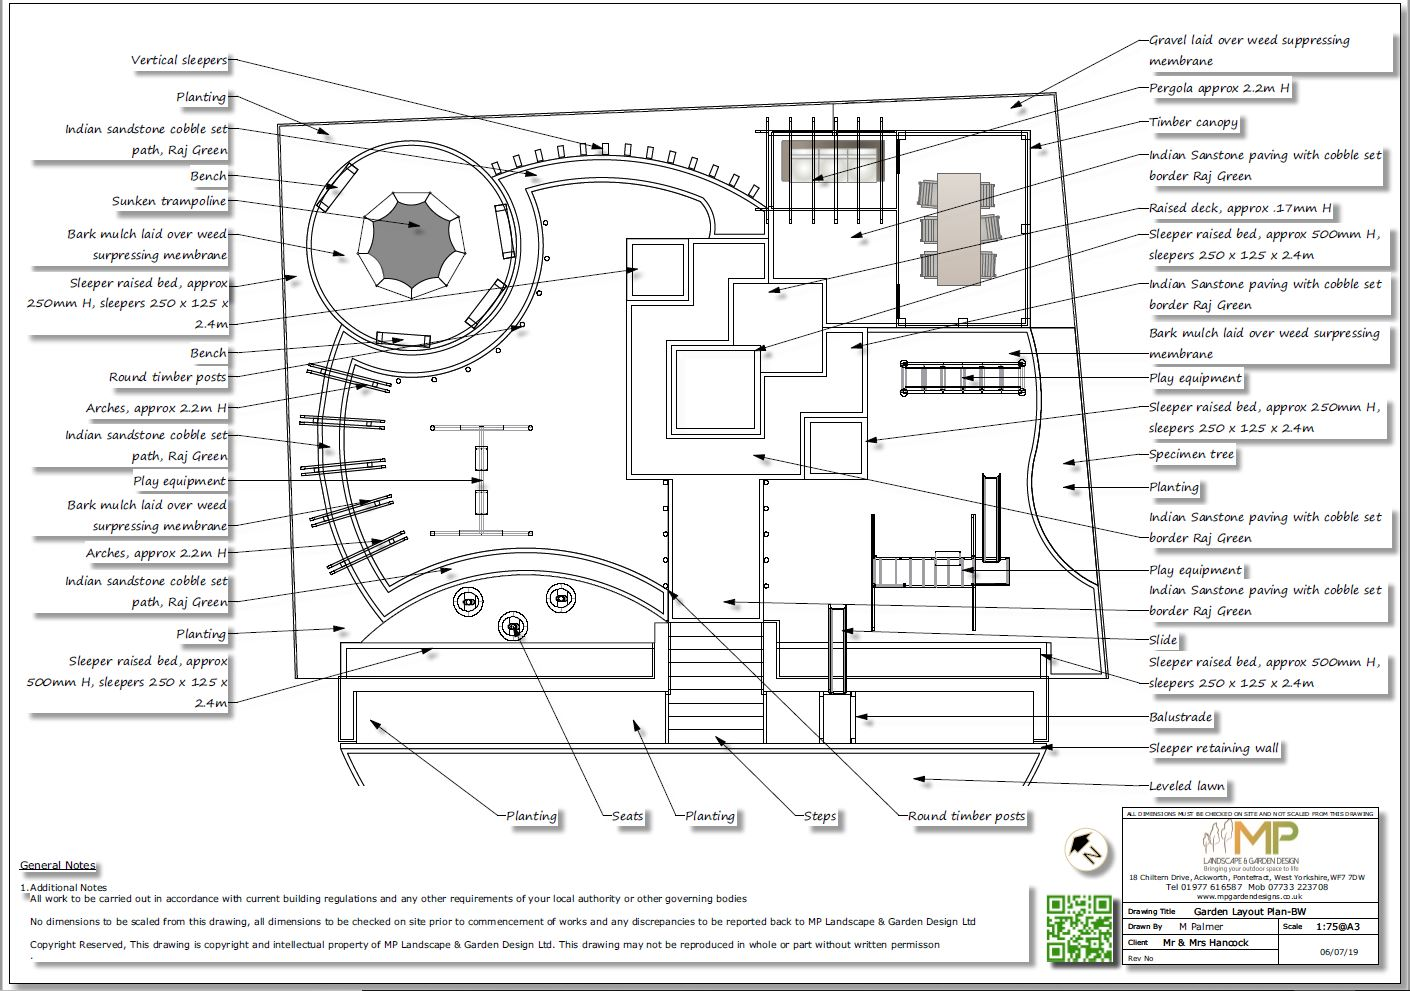 2, Childrens play garden, black and white layout plan, Pontefract